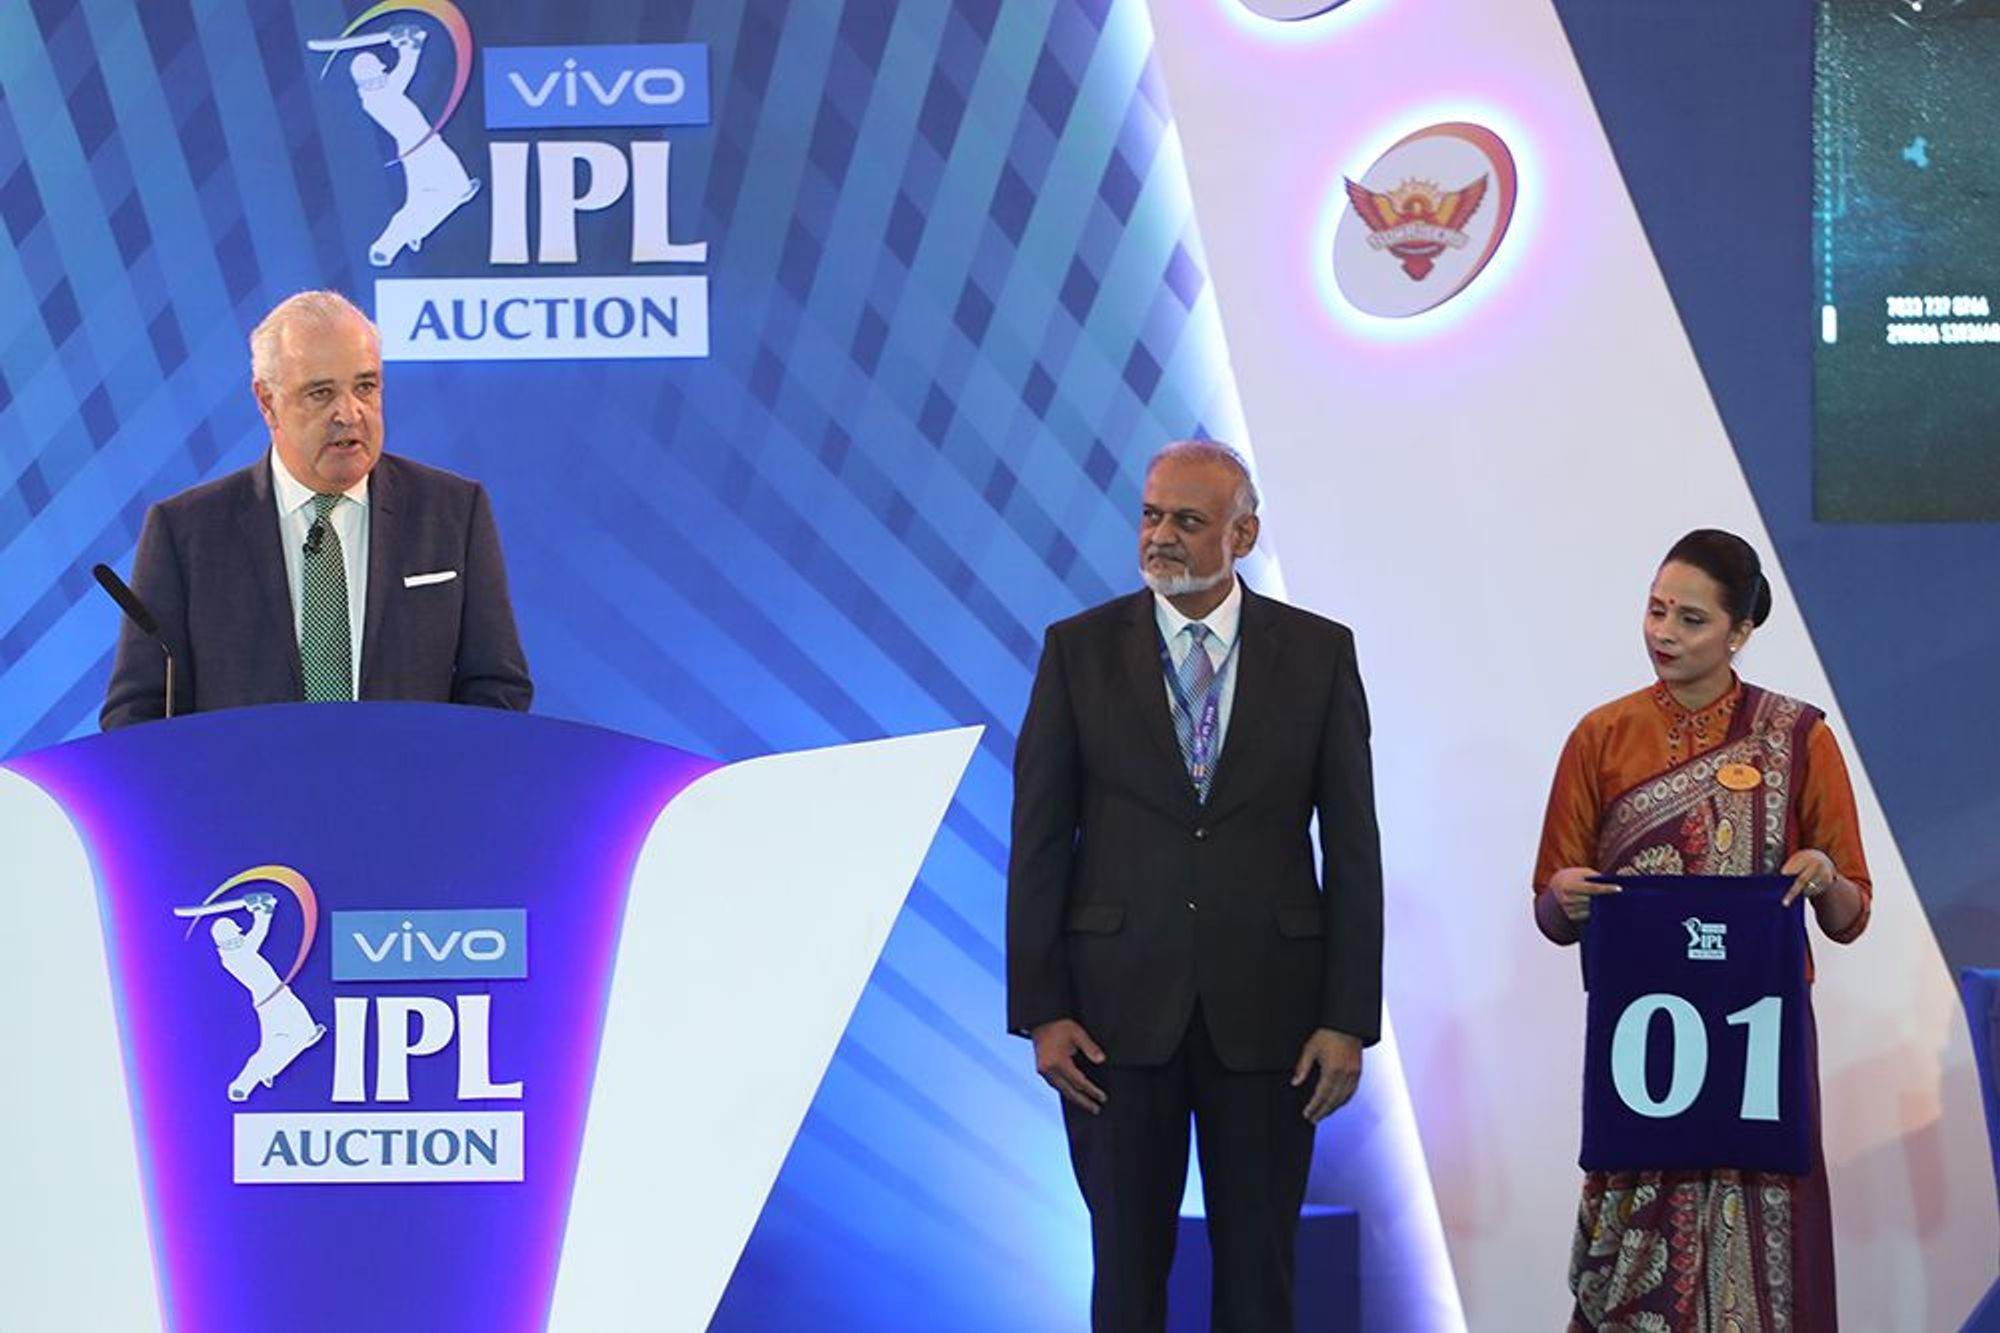 The 2021 IPL auction is rumored to be a mega-auction with a new franchise being added to the mix | BCCI/IPL